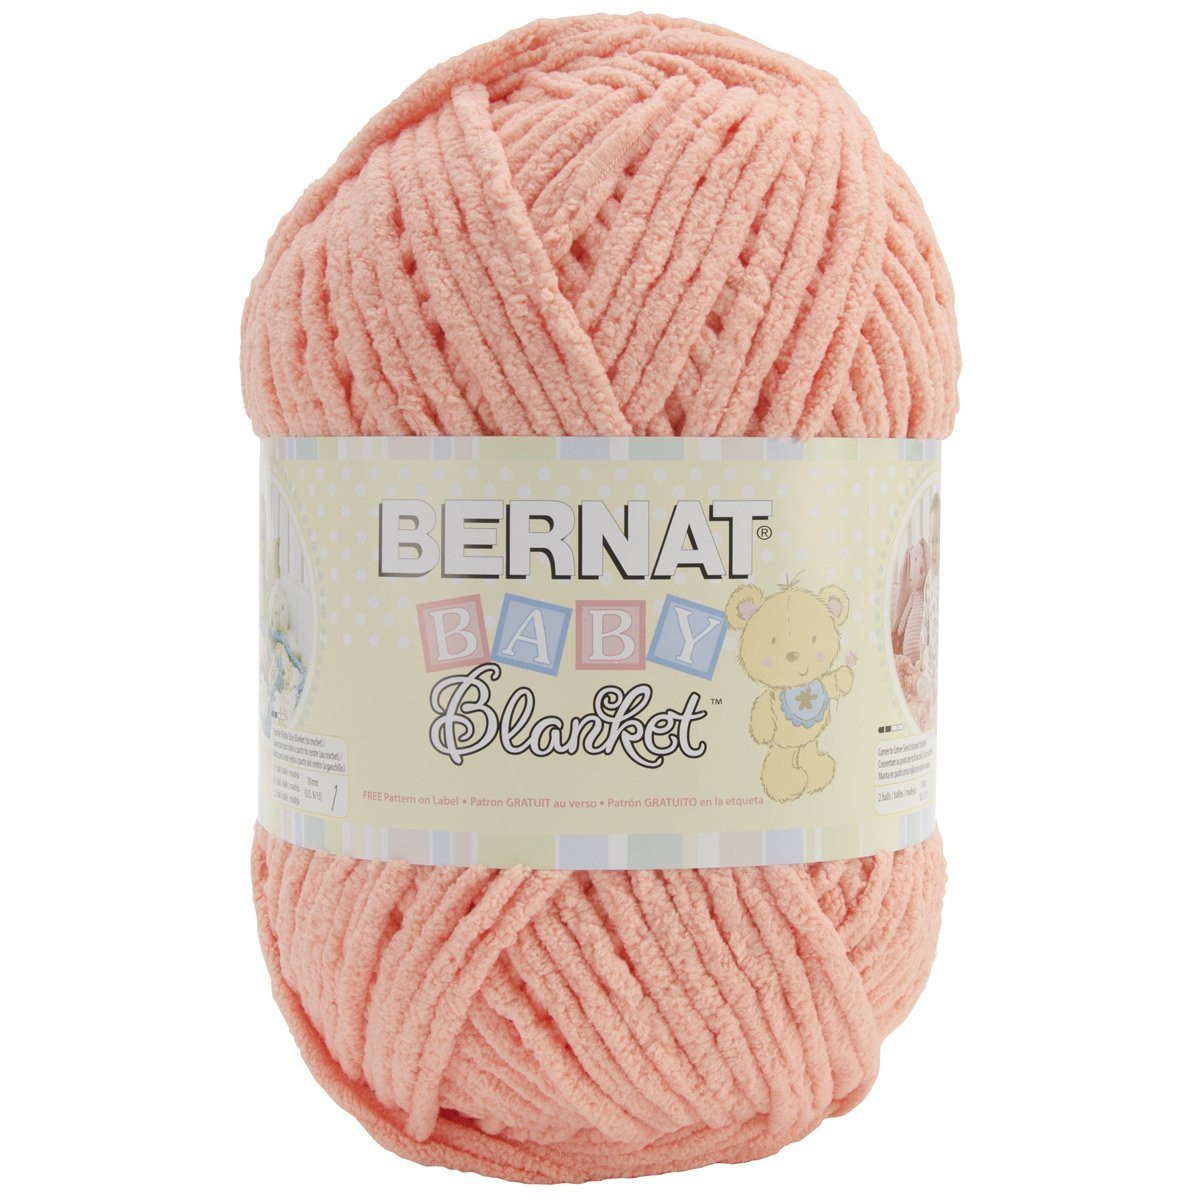 Bernat Blanket Yarn Awesome Bernat Baby Blanket Yarn In Baby Peach 300 Gram Skein Of Beautiful 42 Models Bernat Blanket Yarn